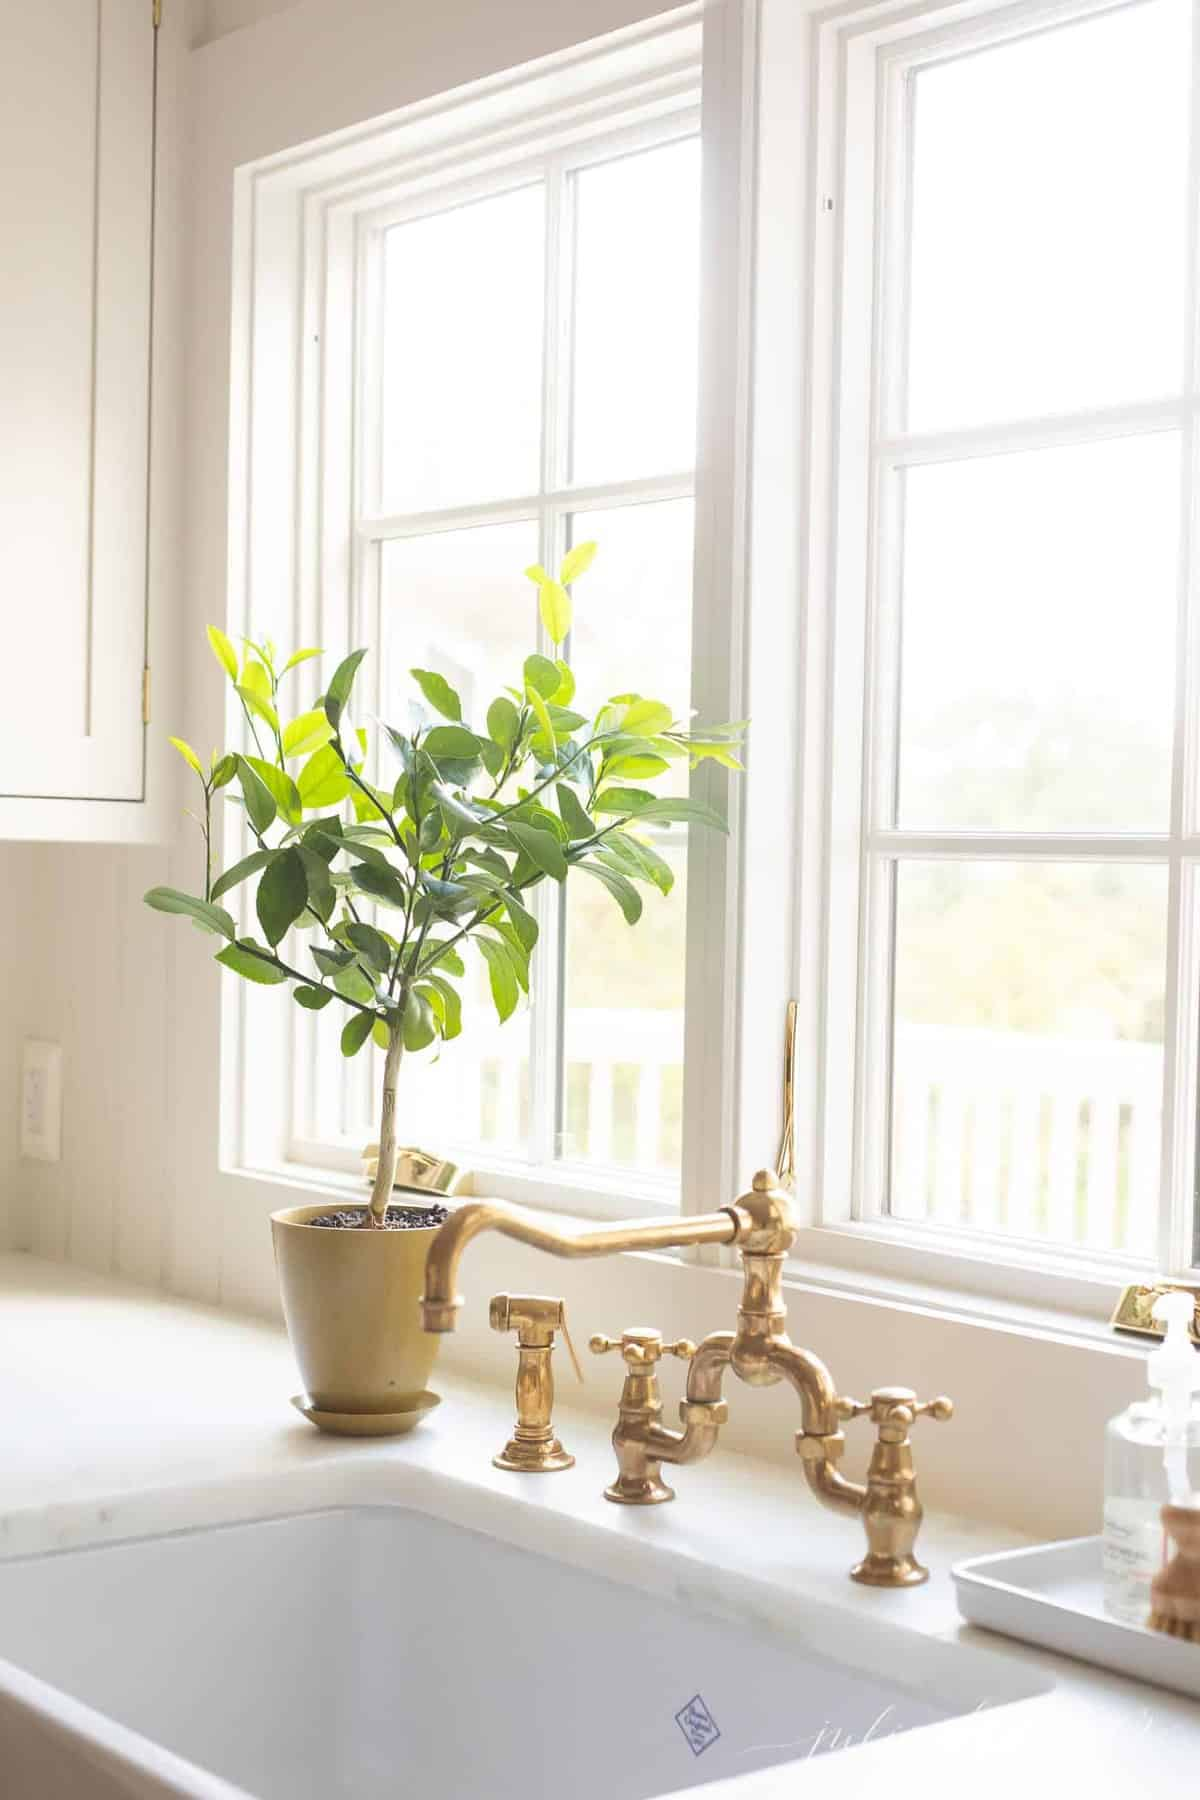 A white kitchen sink area, with a topiary style potted Meyer lemon tree.